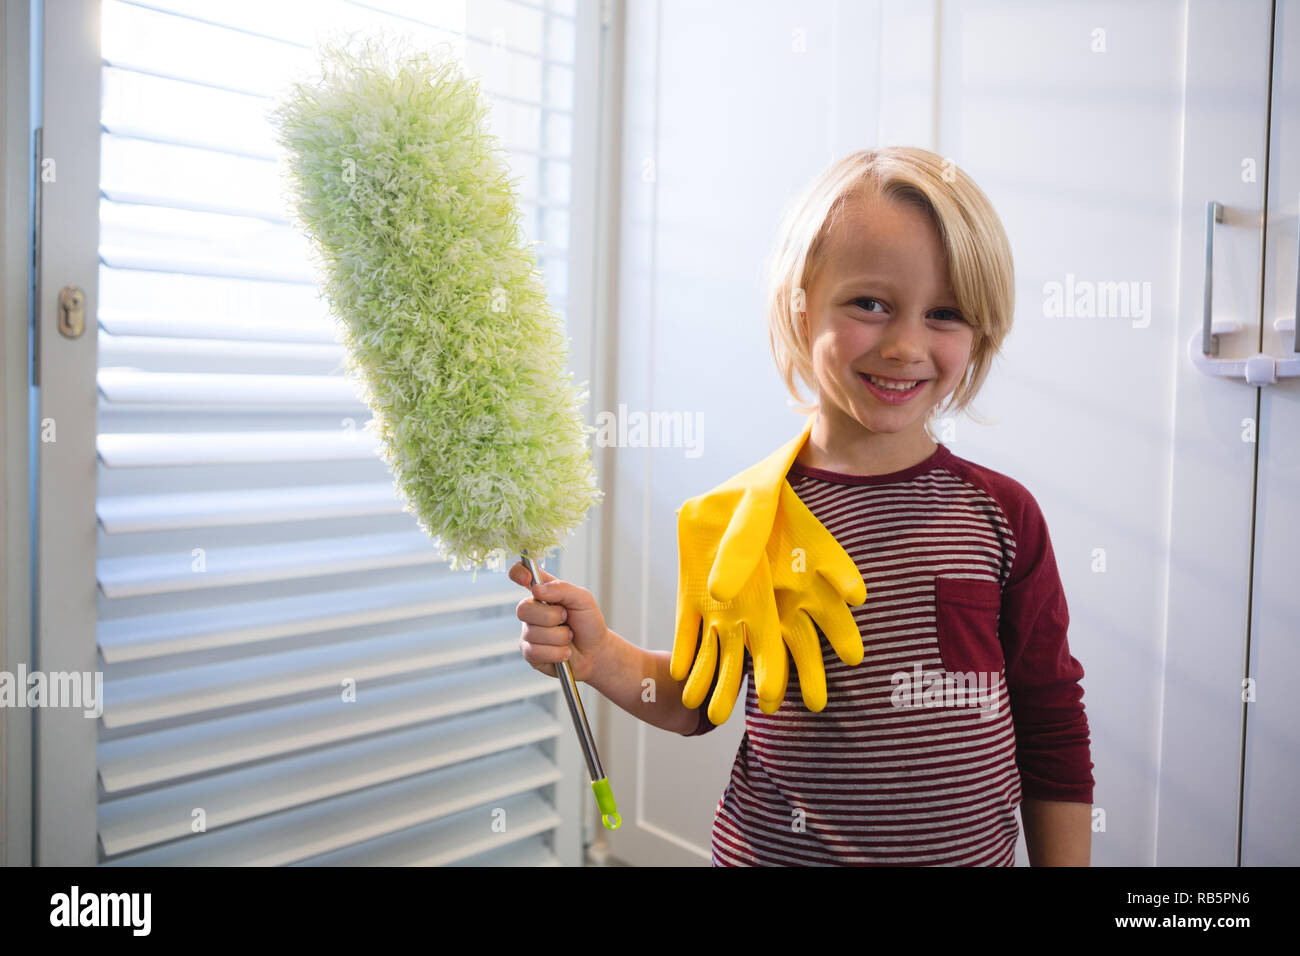 Boy holding a mop at home - Stock Image